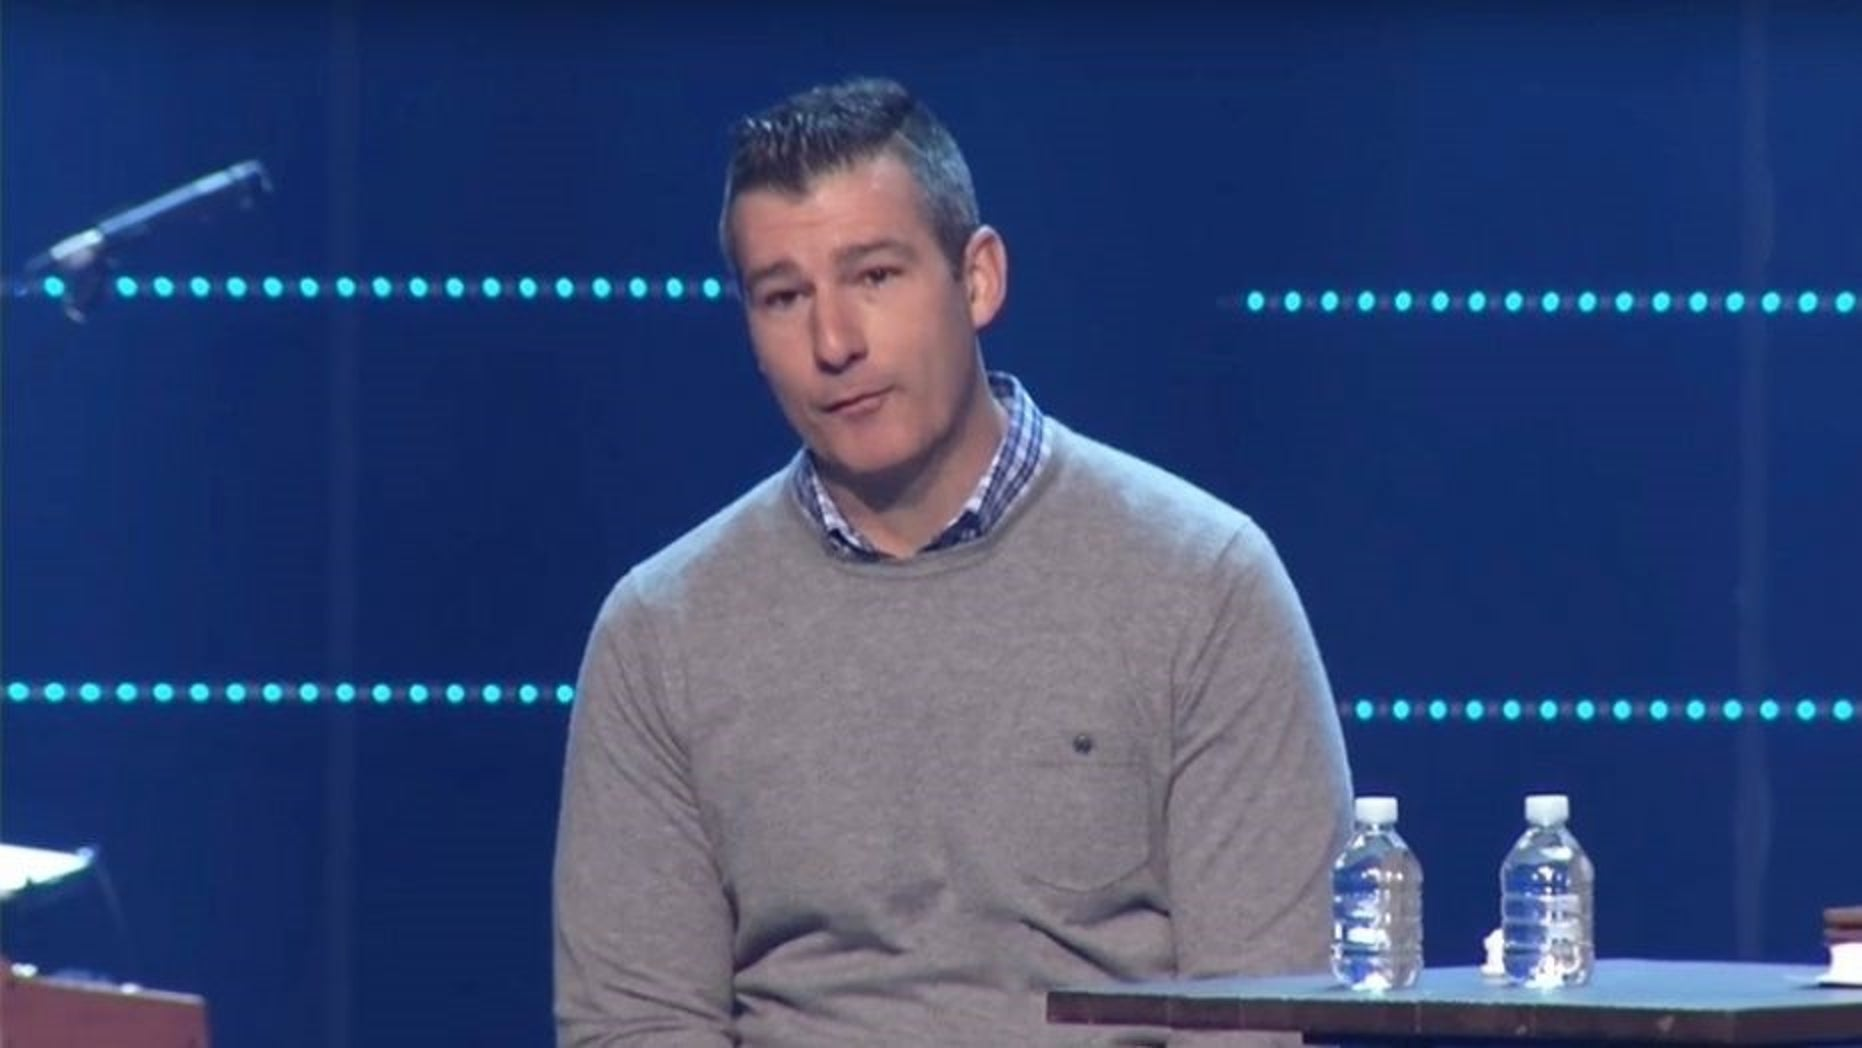 Andy Savage, a pastor at Highpoint Church in Memphis, resigned Tuesday after he was accused of sexually assaulting a teenage girl some 20 years ago.